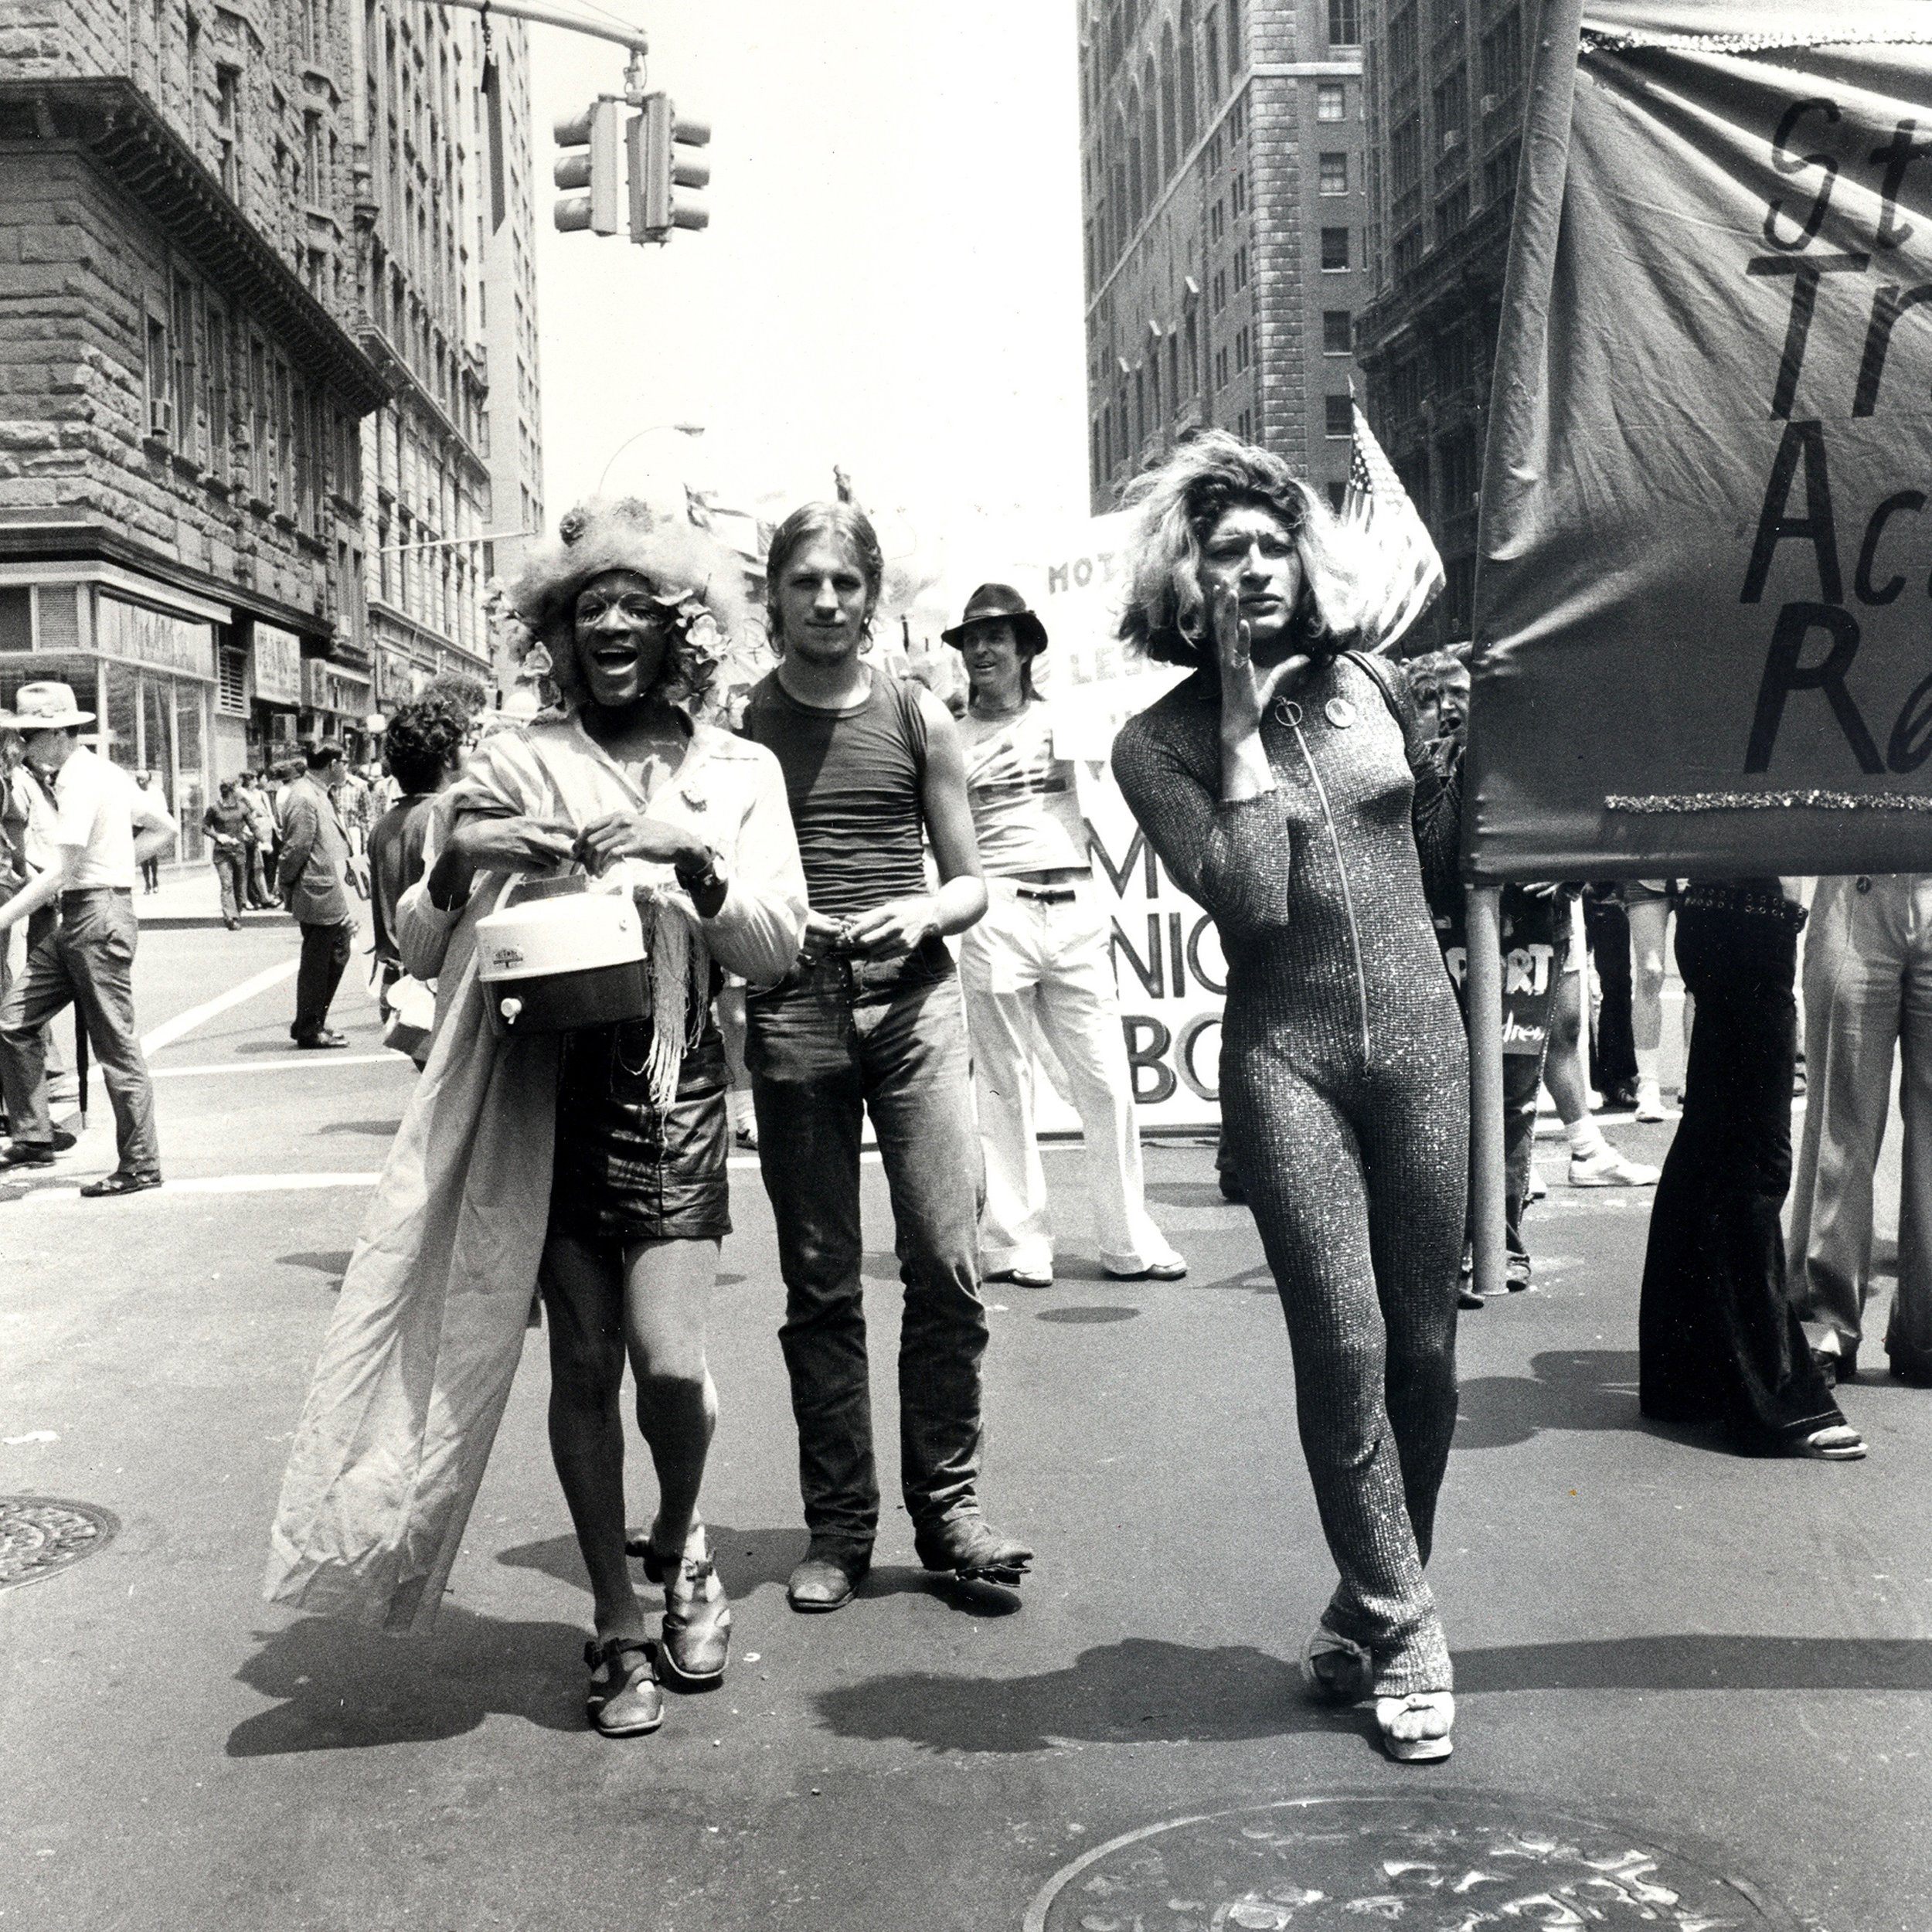 We shall overcome - Marsha P. Johnson (izquierda) y Sylvia Rivera (derecha), cofundadoras de Street Transvestite Action Revolutionaries (STAR) en el Desfile del Orgullo Gay en el Día de la Liberación de Christopher Street.Nueva York, 24 de junio de 1973. Crédito: Leonard Fink.Cortesía LGBT Community Center National History Archive.